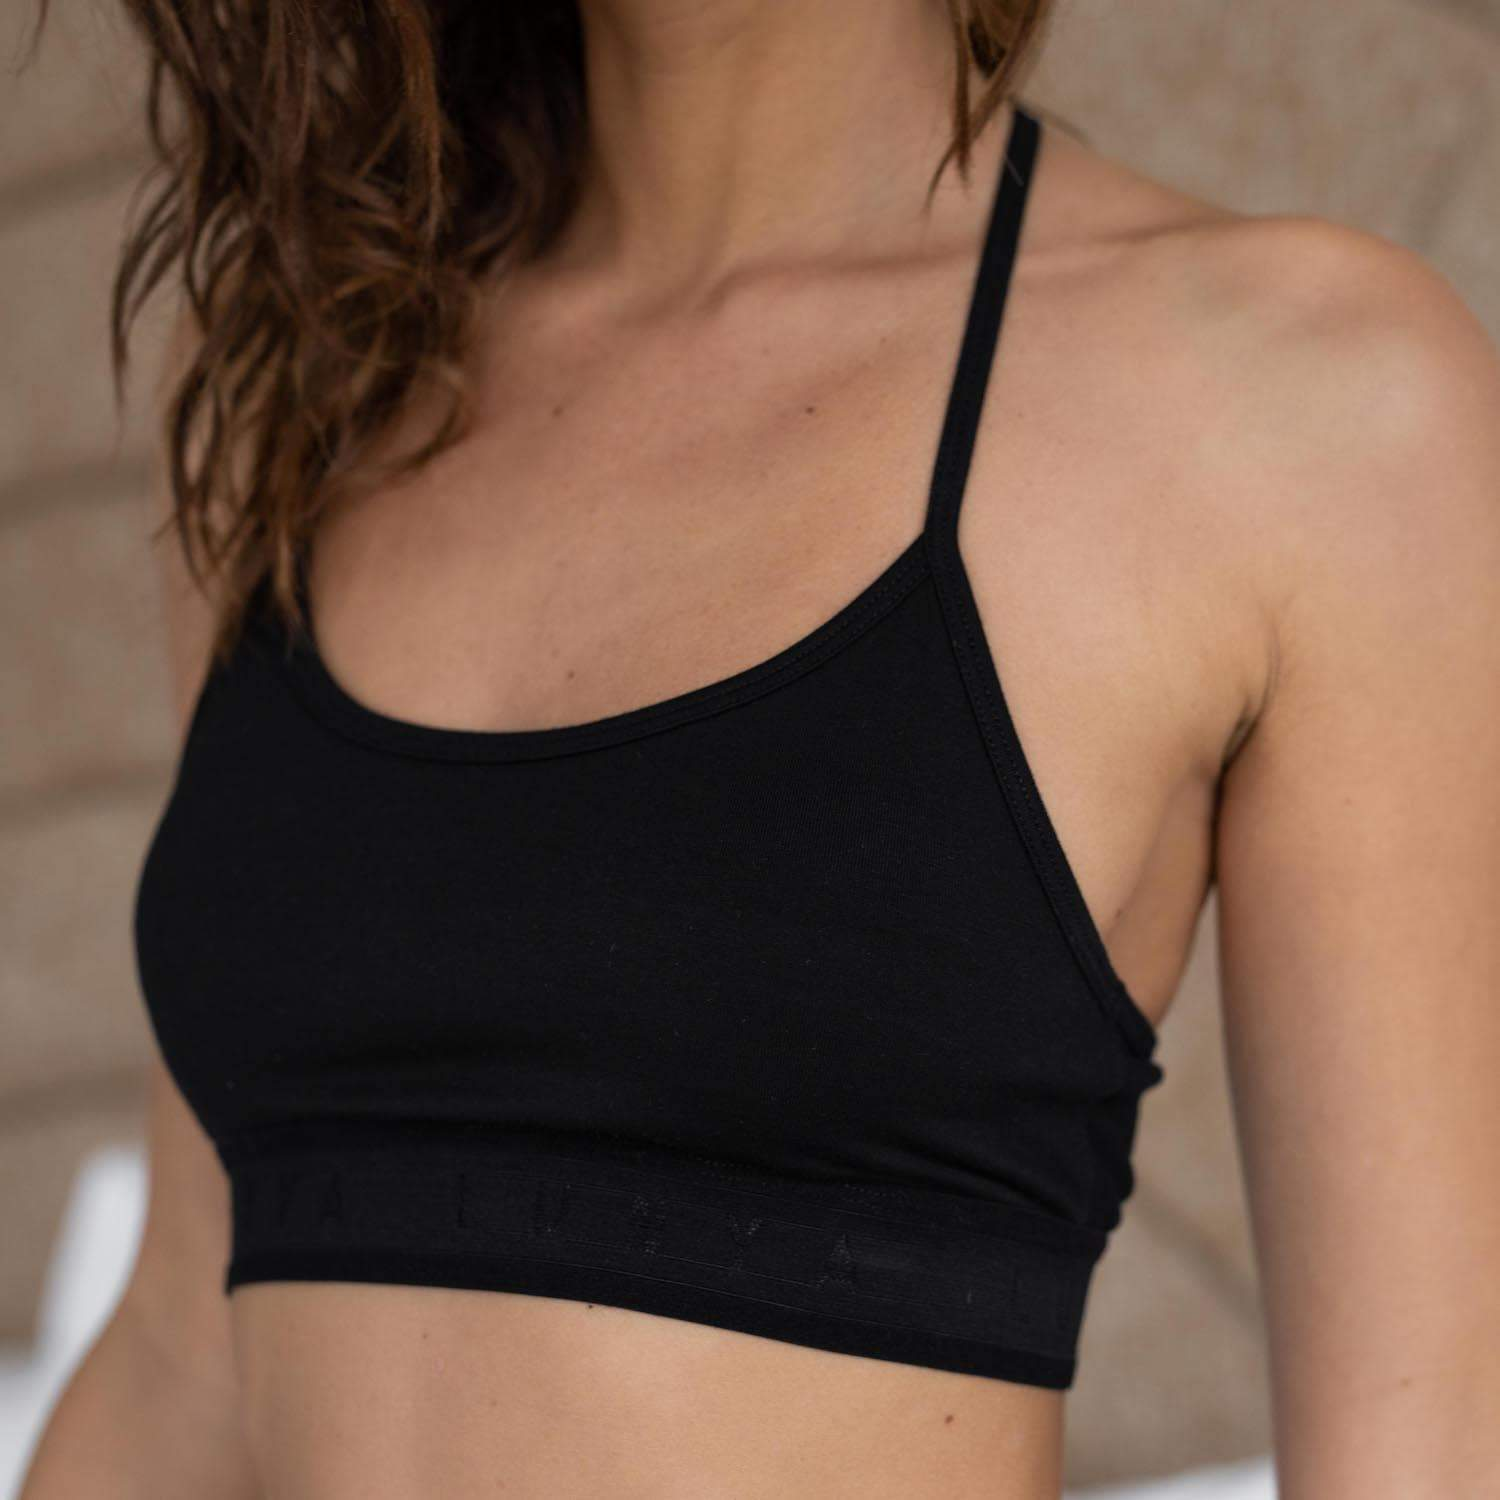 Lunya Sleepwear Supportive Modal Sleep Bralette - #Black/Black